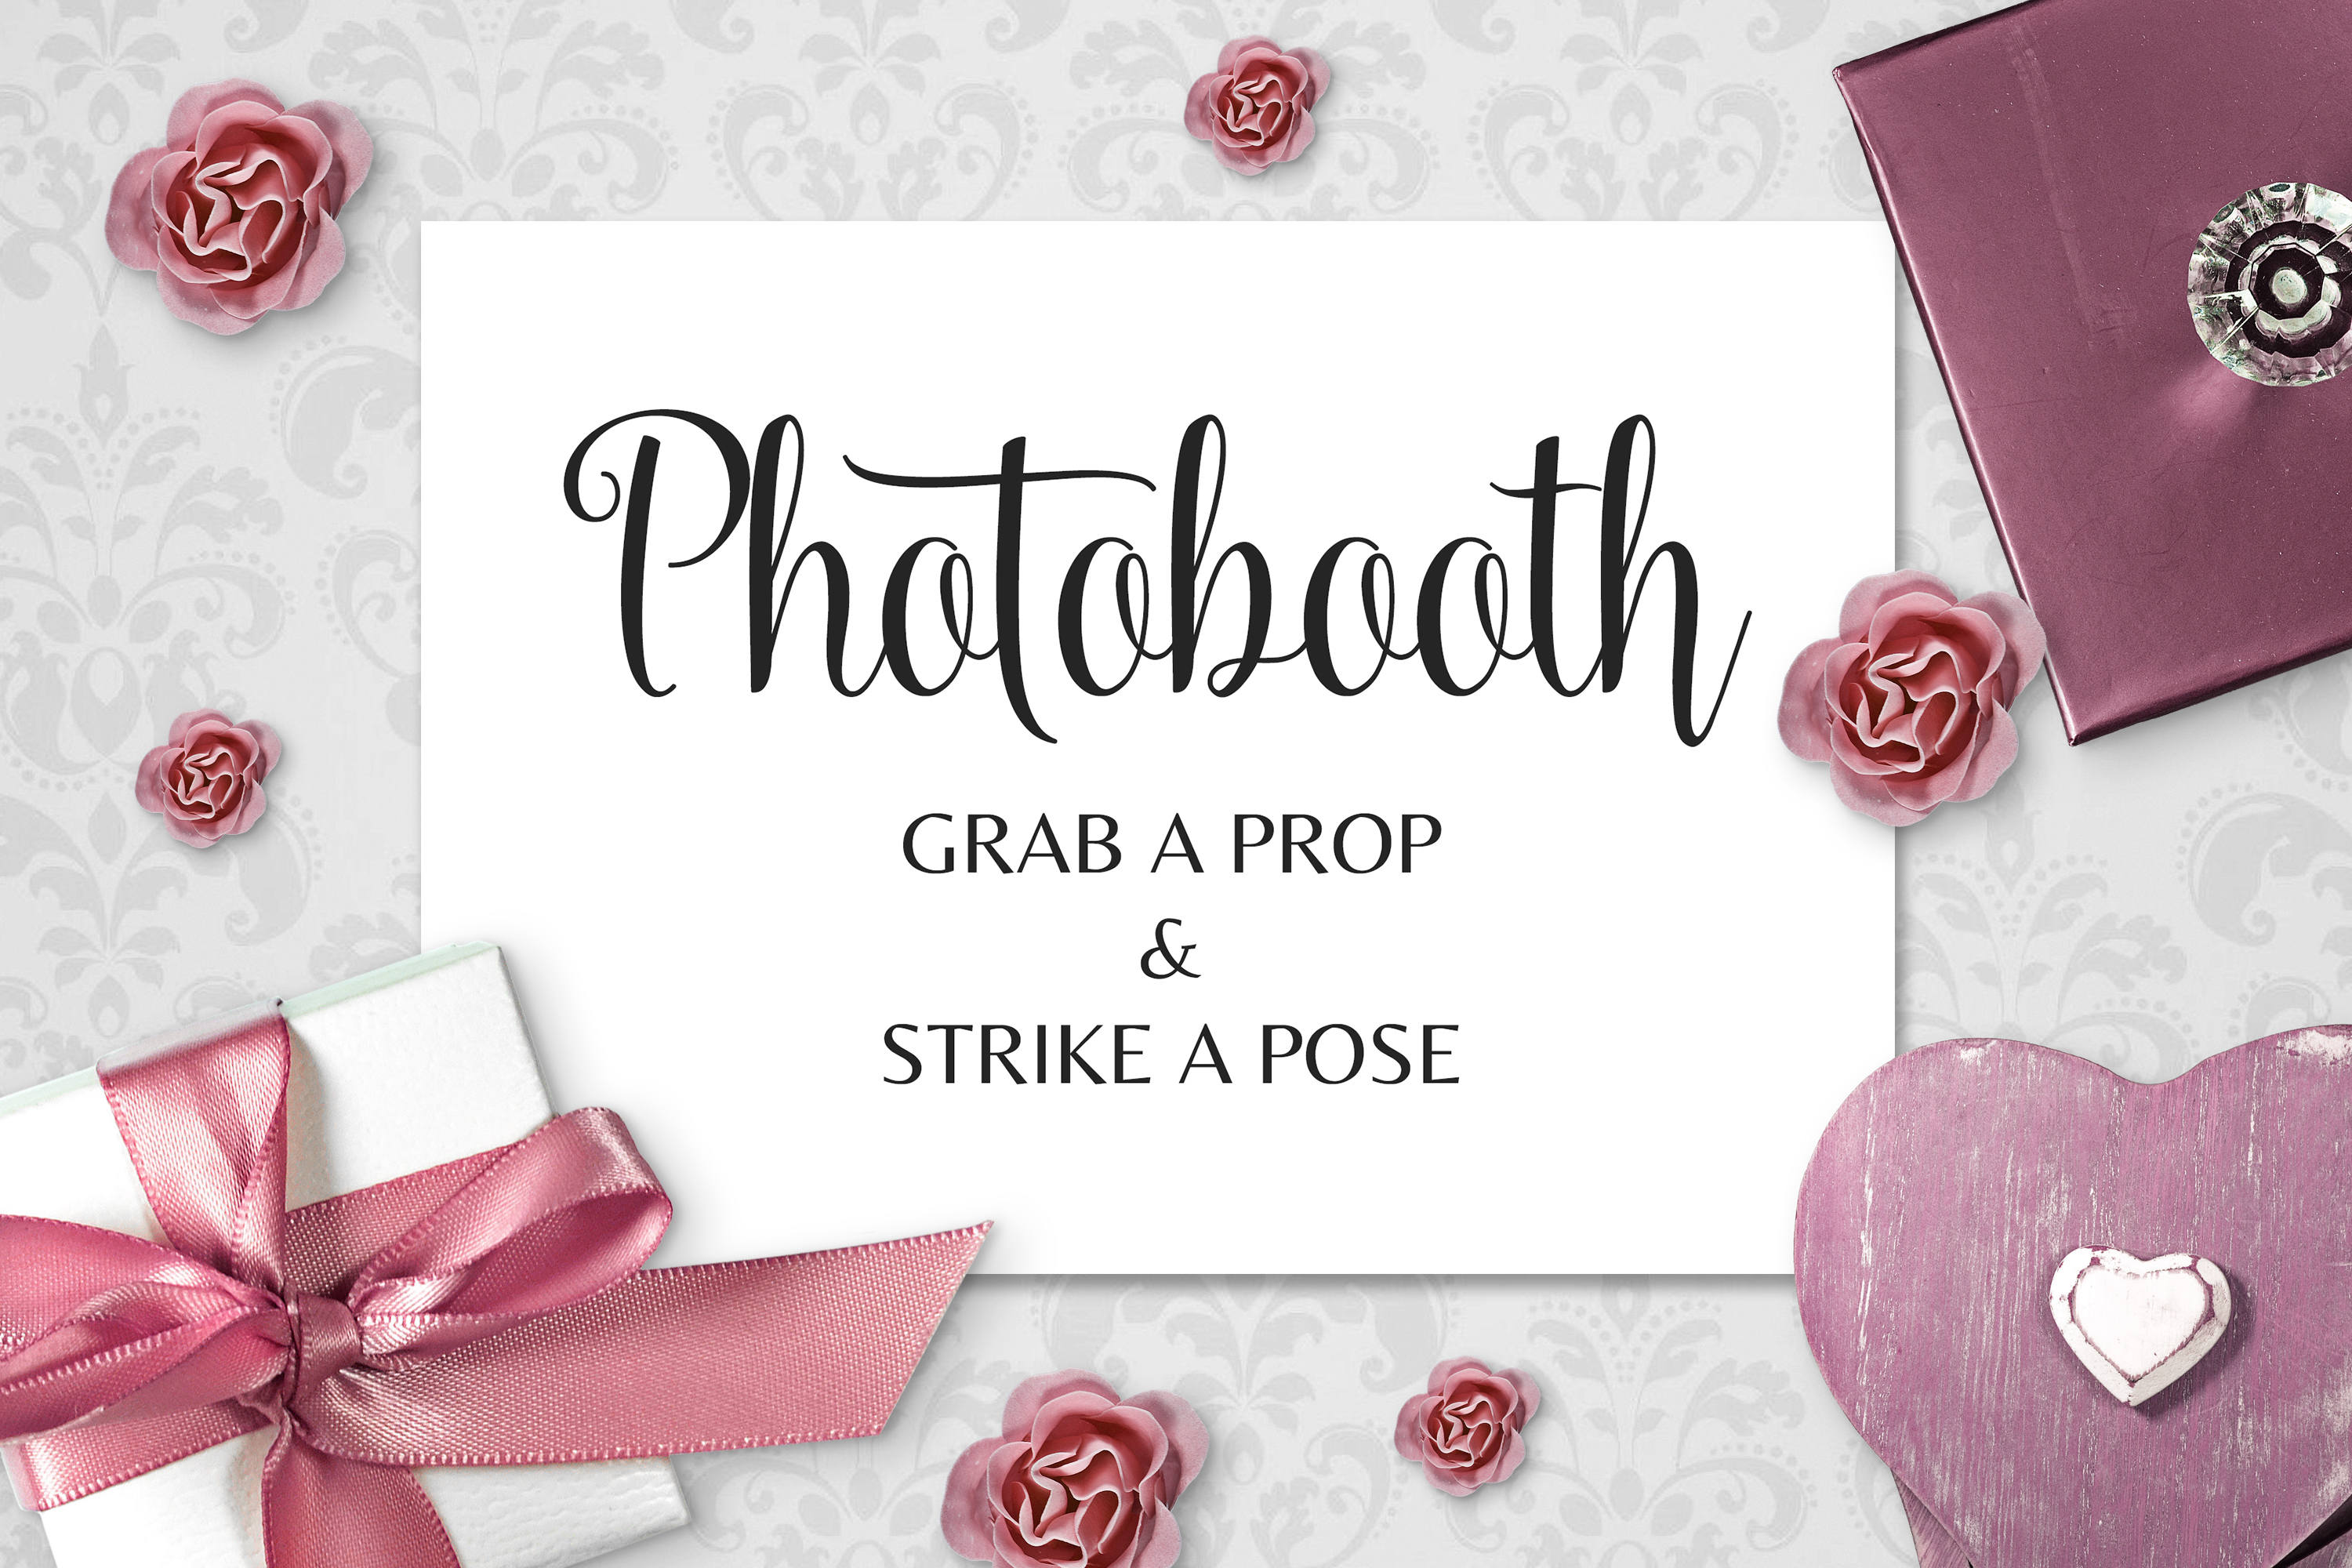 Photobooth sign, photo booth sign, grab a prop, strike a pose ...